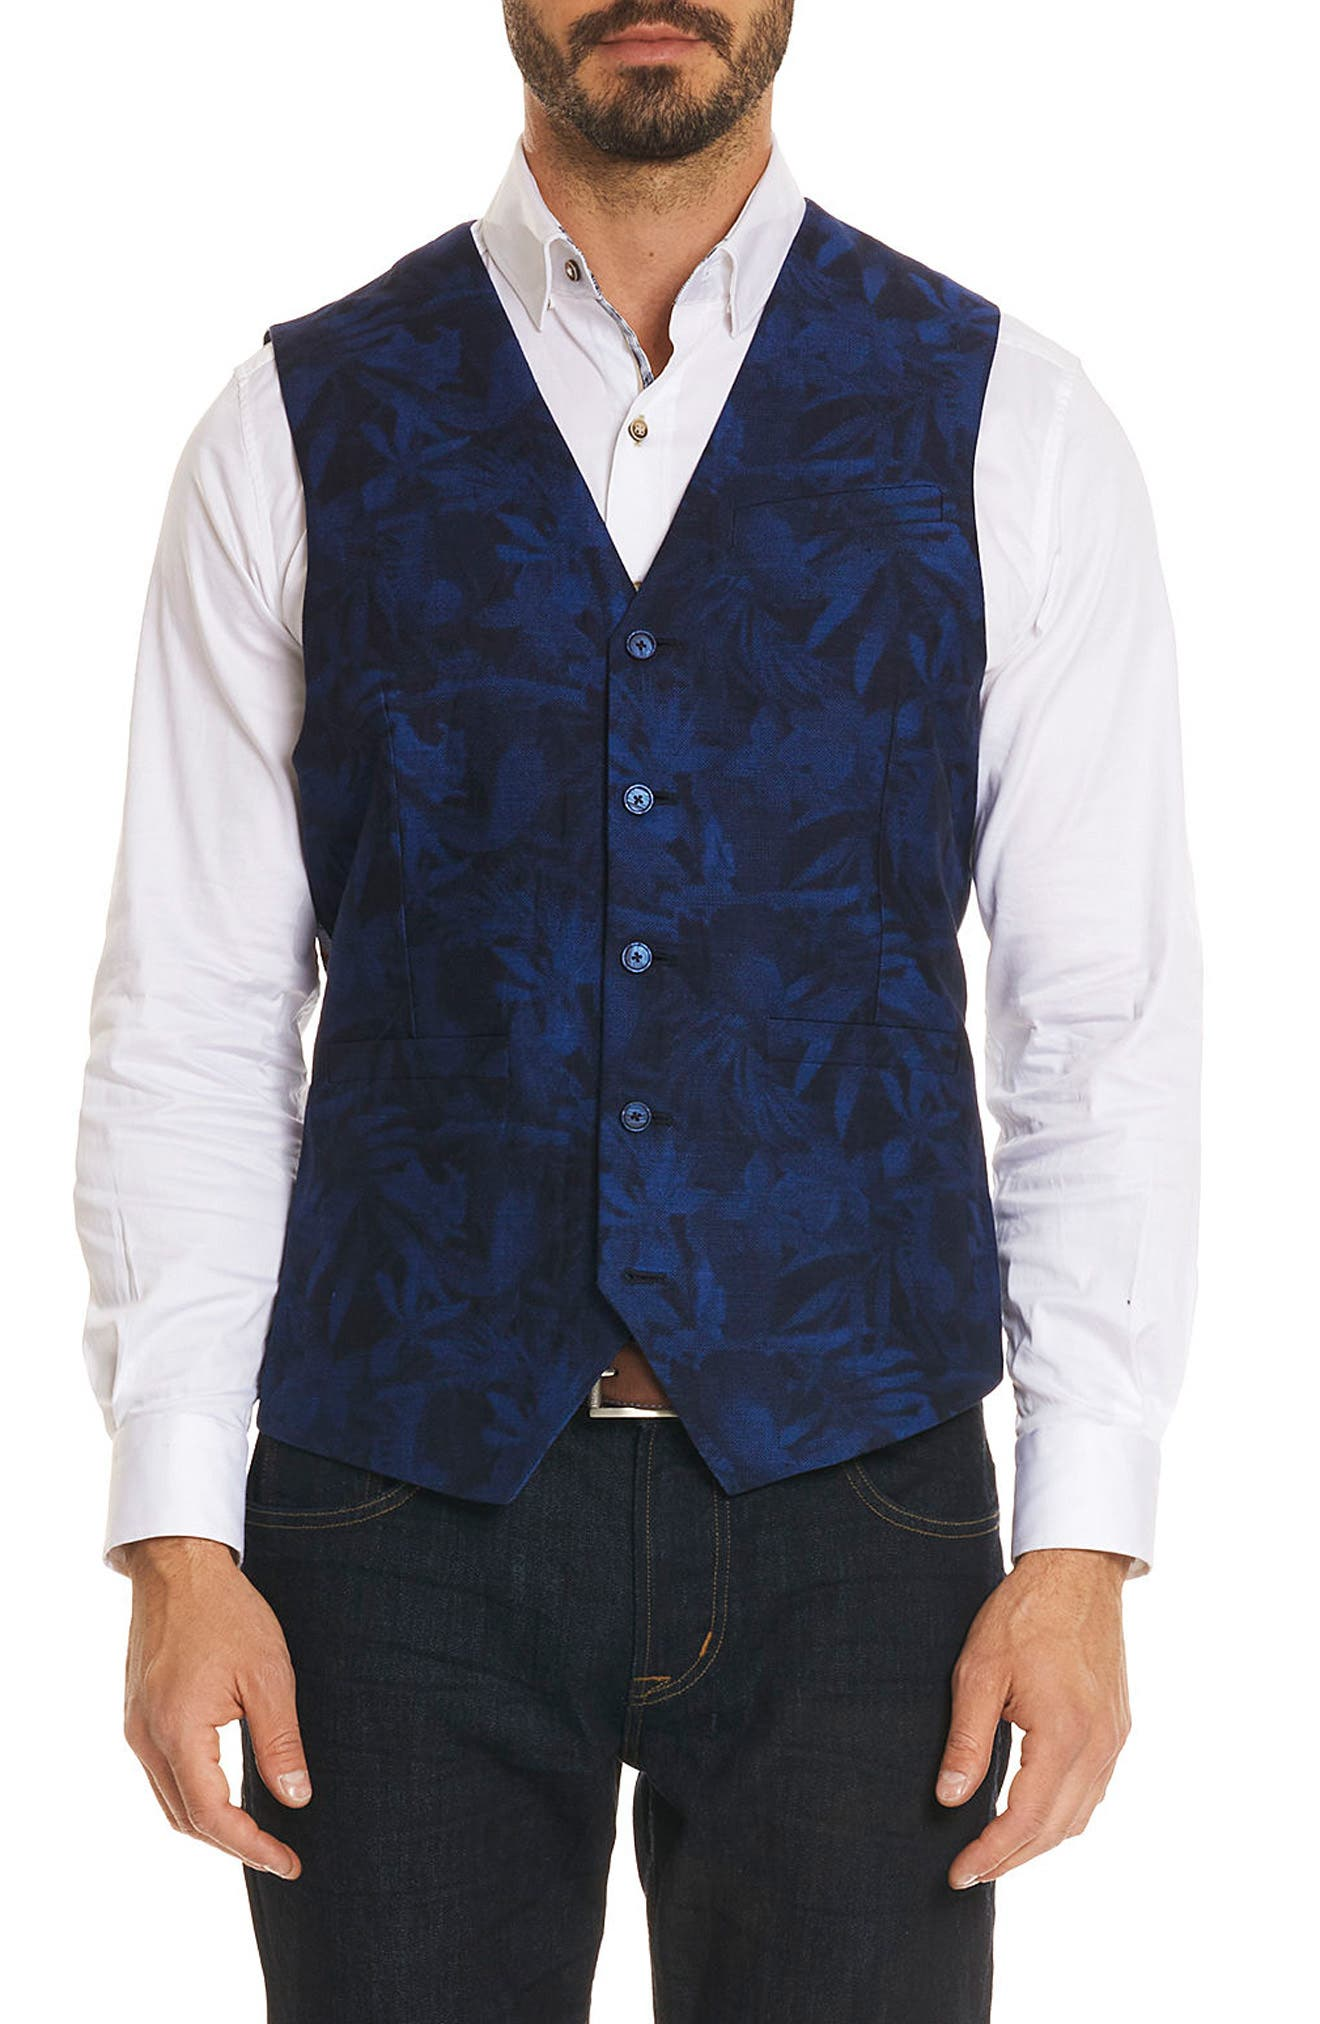 Nunez Regular Fit Linen & Cotton Vest,                         Main,                         color, Blue